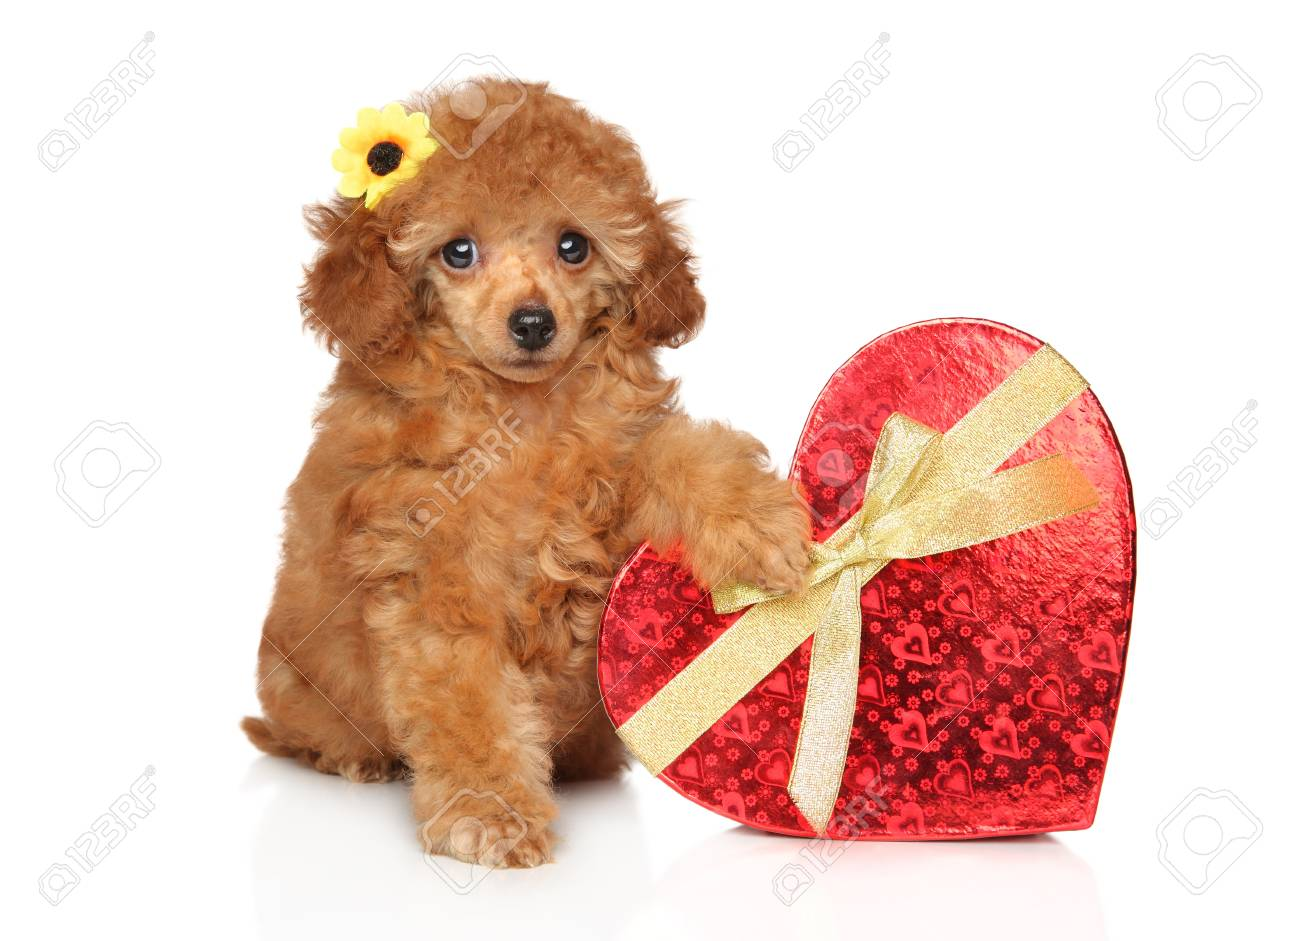 Toy Poodle Puppy With Red Heart On A White Background Baby Animal Stock Photo Picture And Royalty Free Image Image 117255654